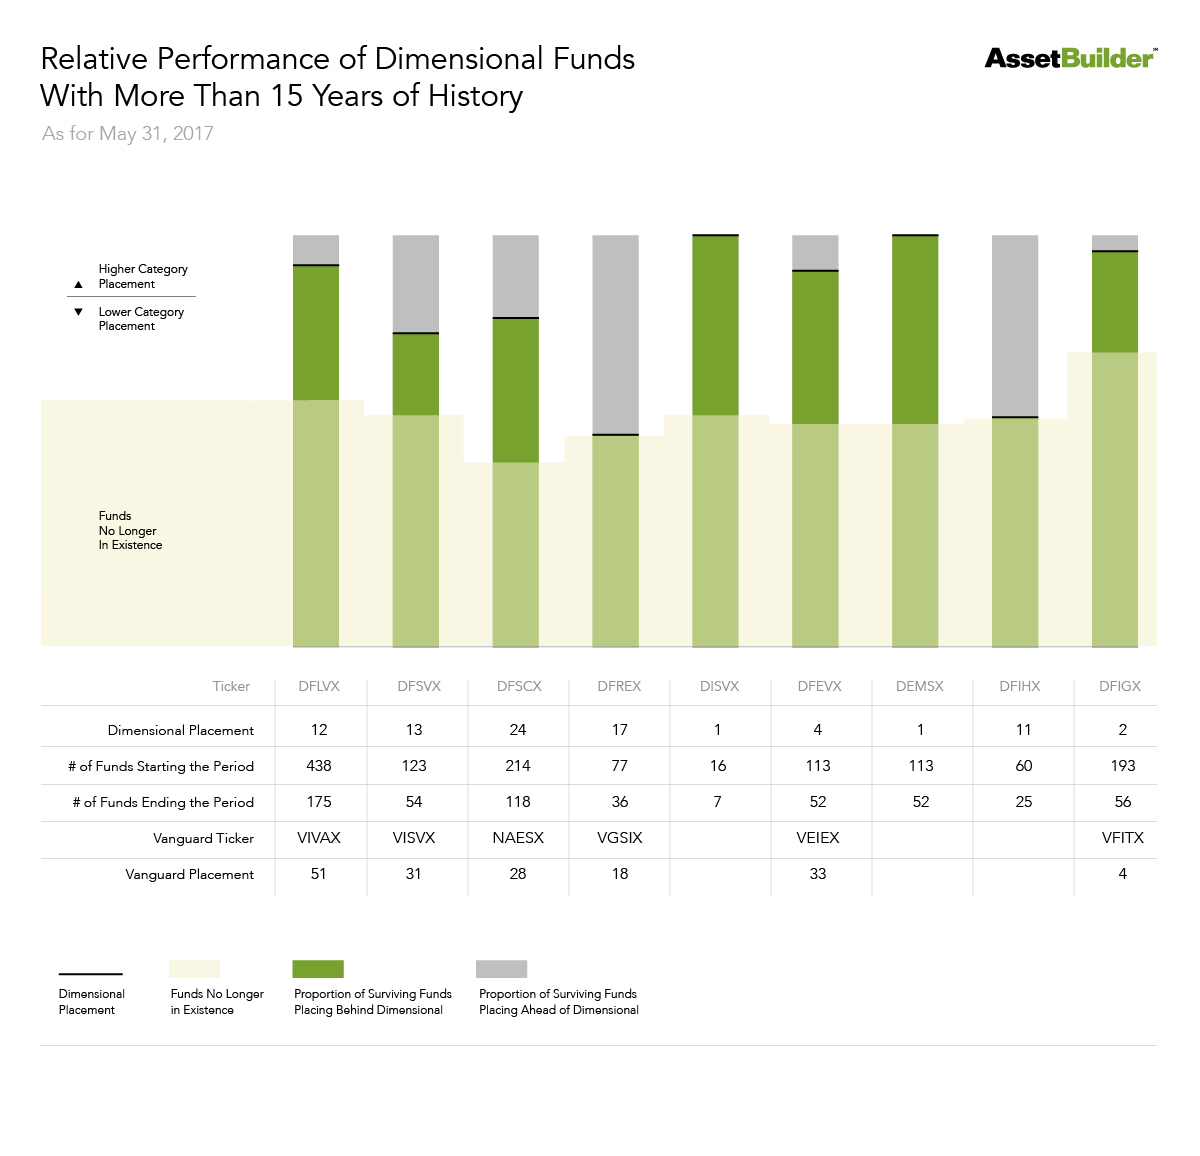 Relative Performance of Dimensional Funds With More Than 15 Years of History